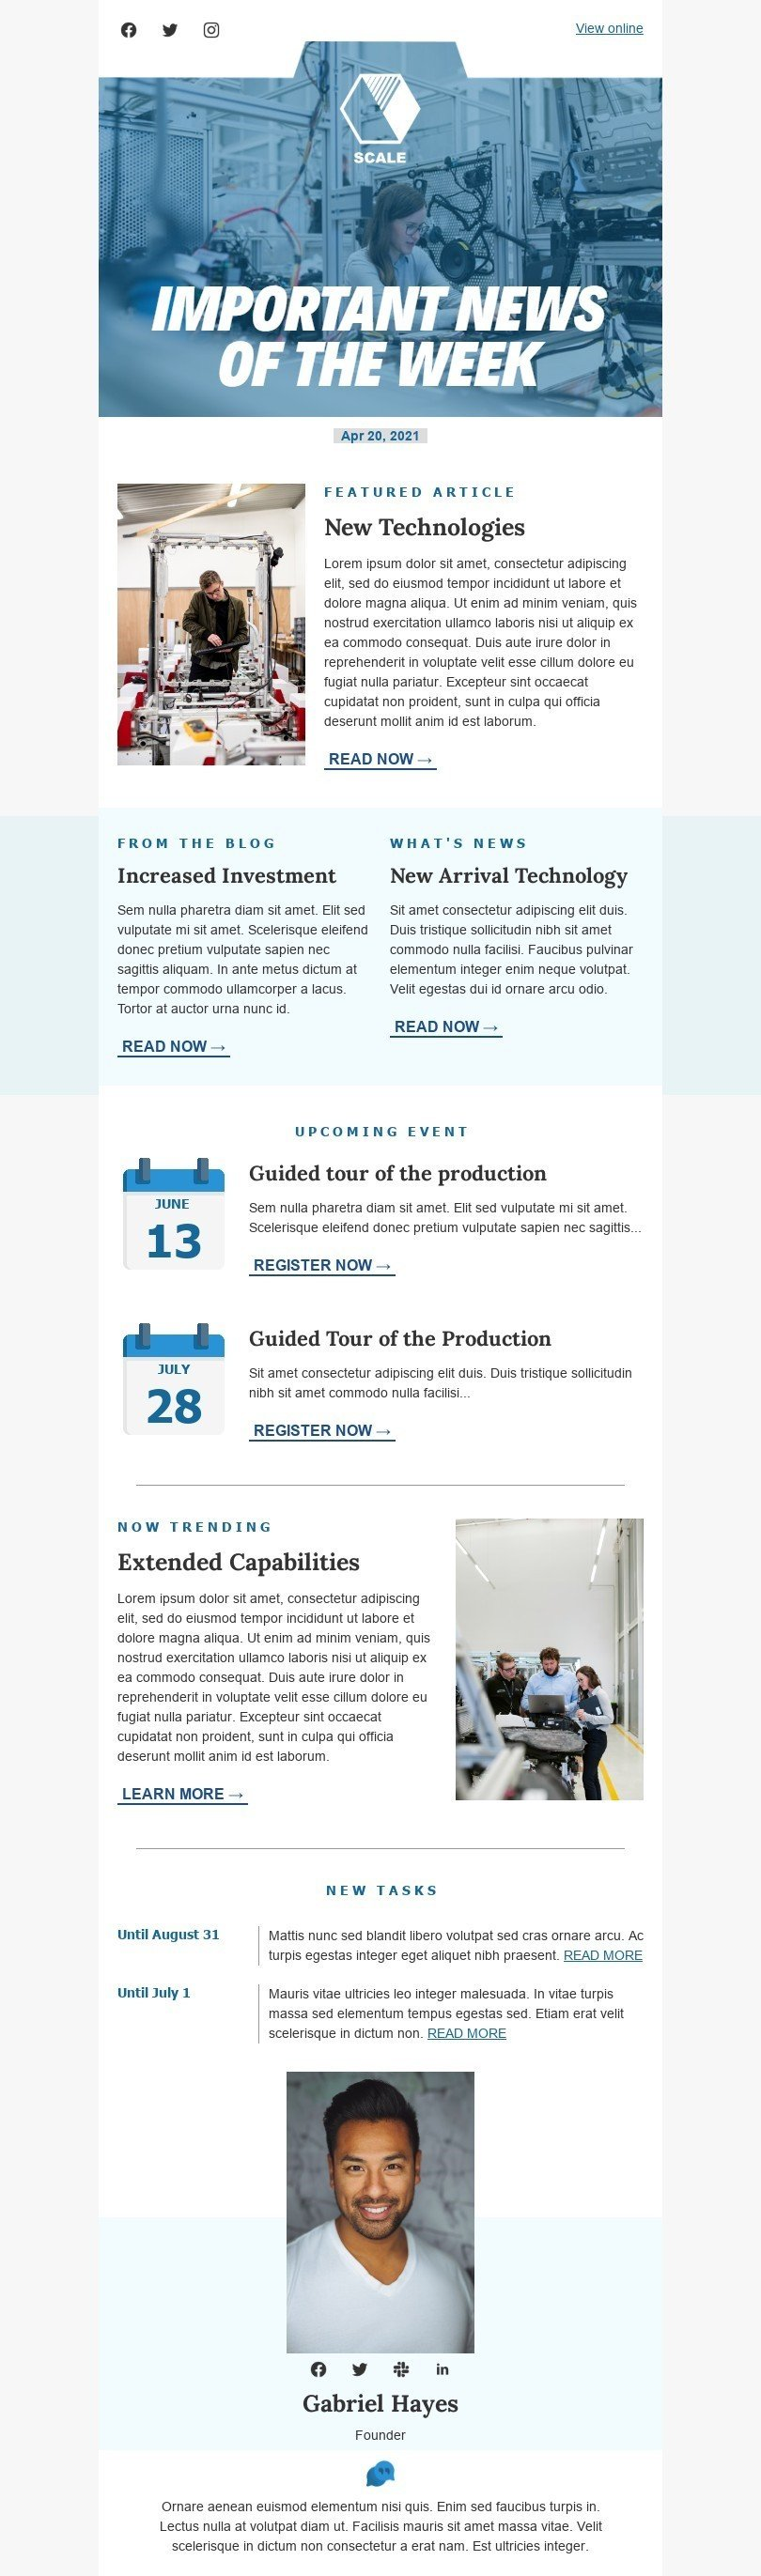 Promo Email Template «News of the week» for Manufacturing industry desktop view